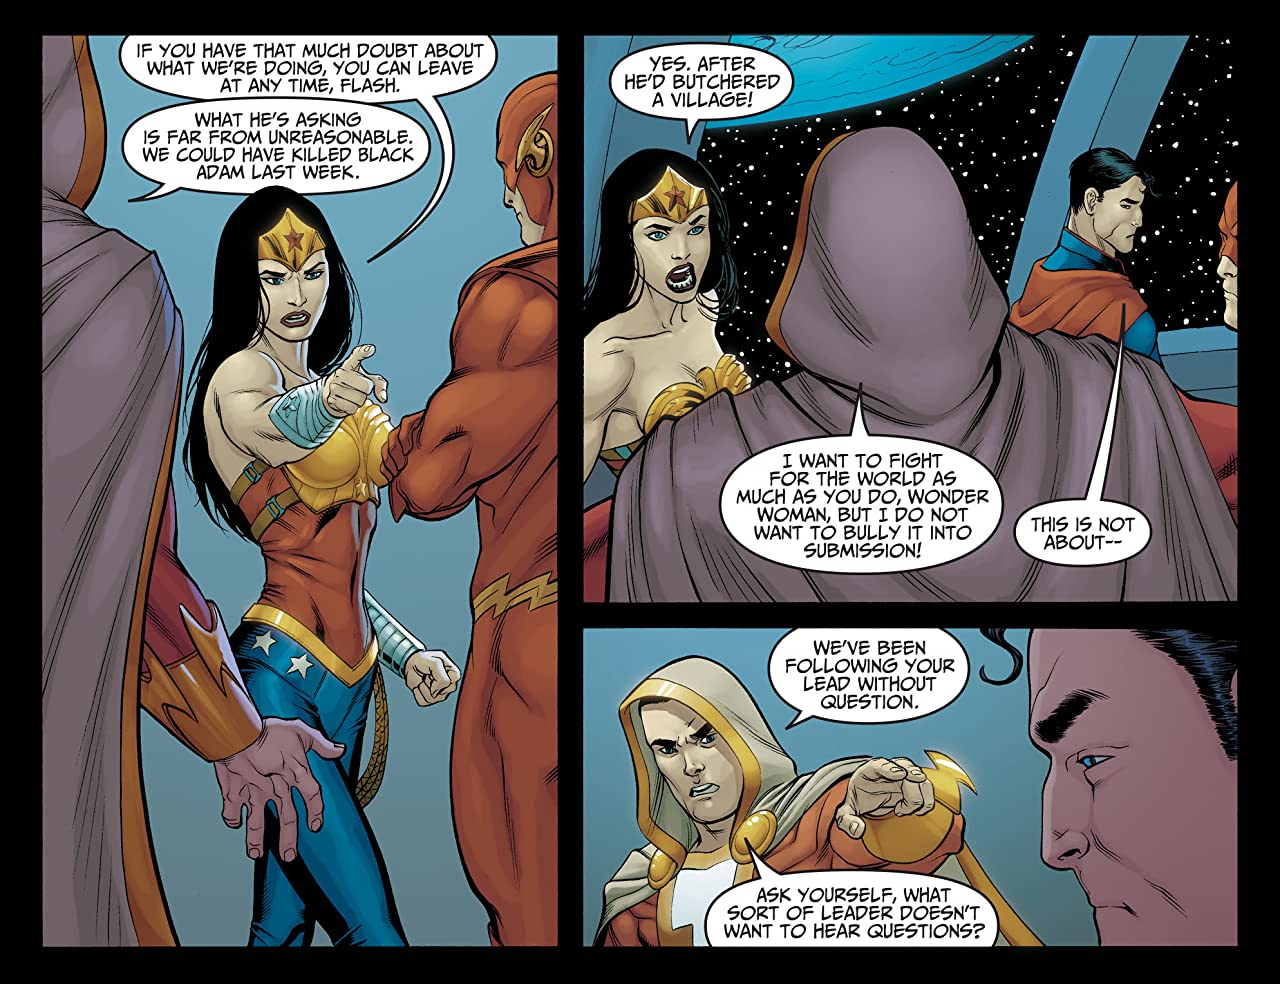 Injustice: Gods Among Us (2013) #22